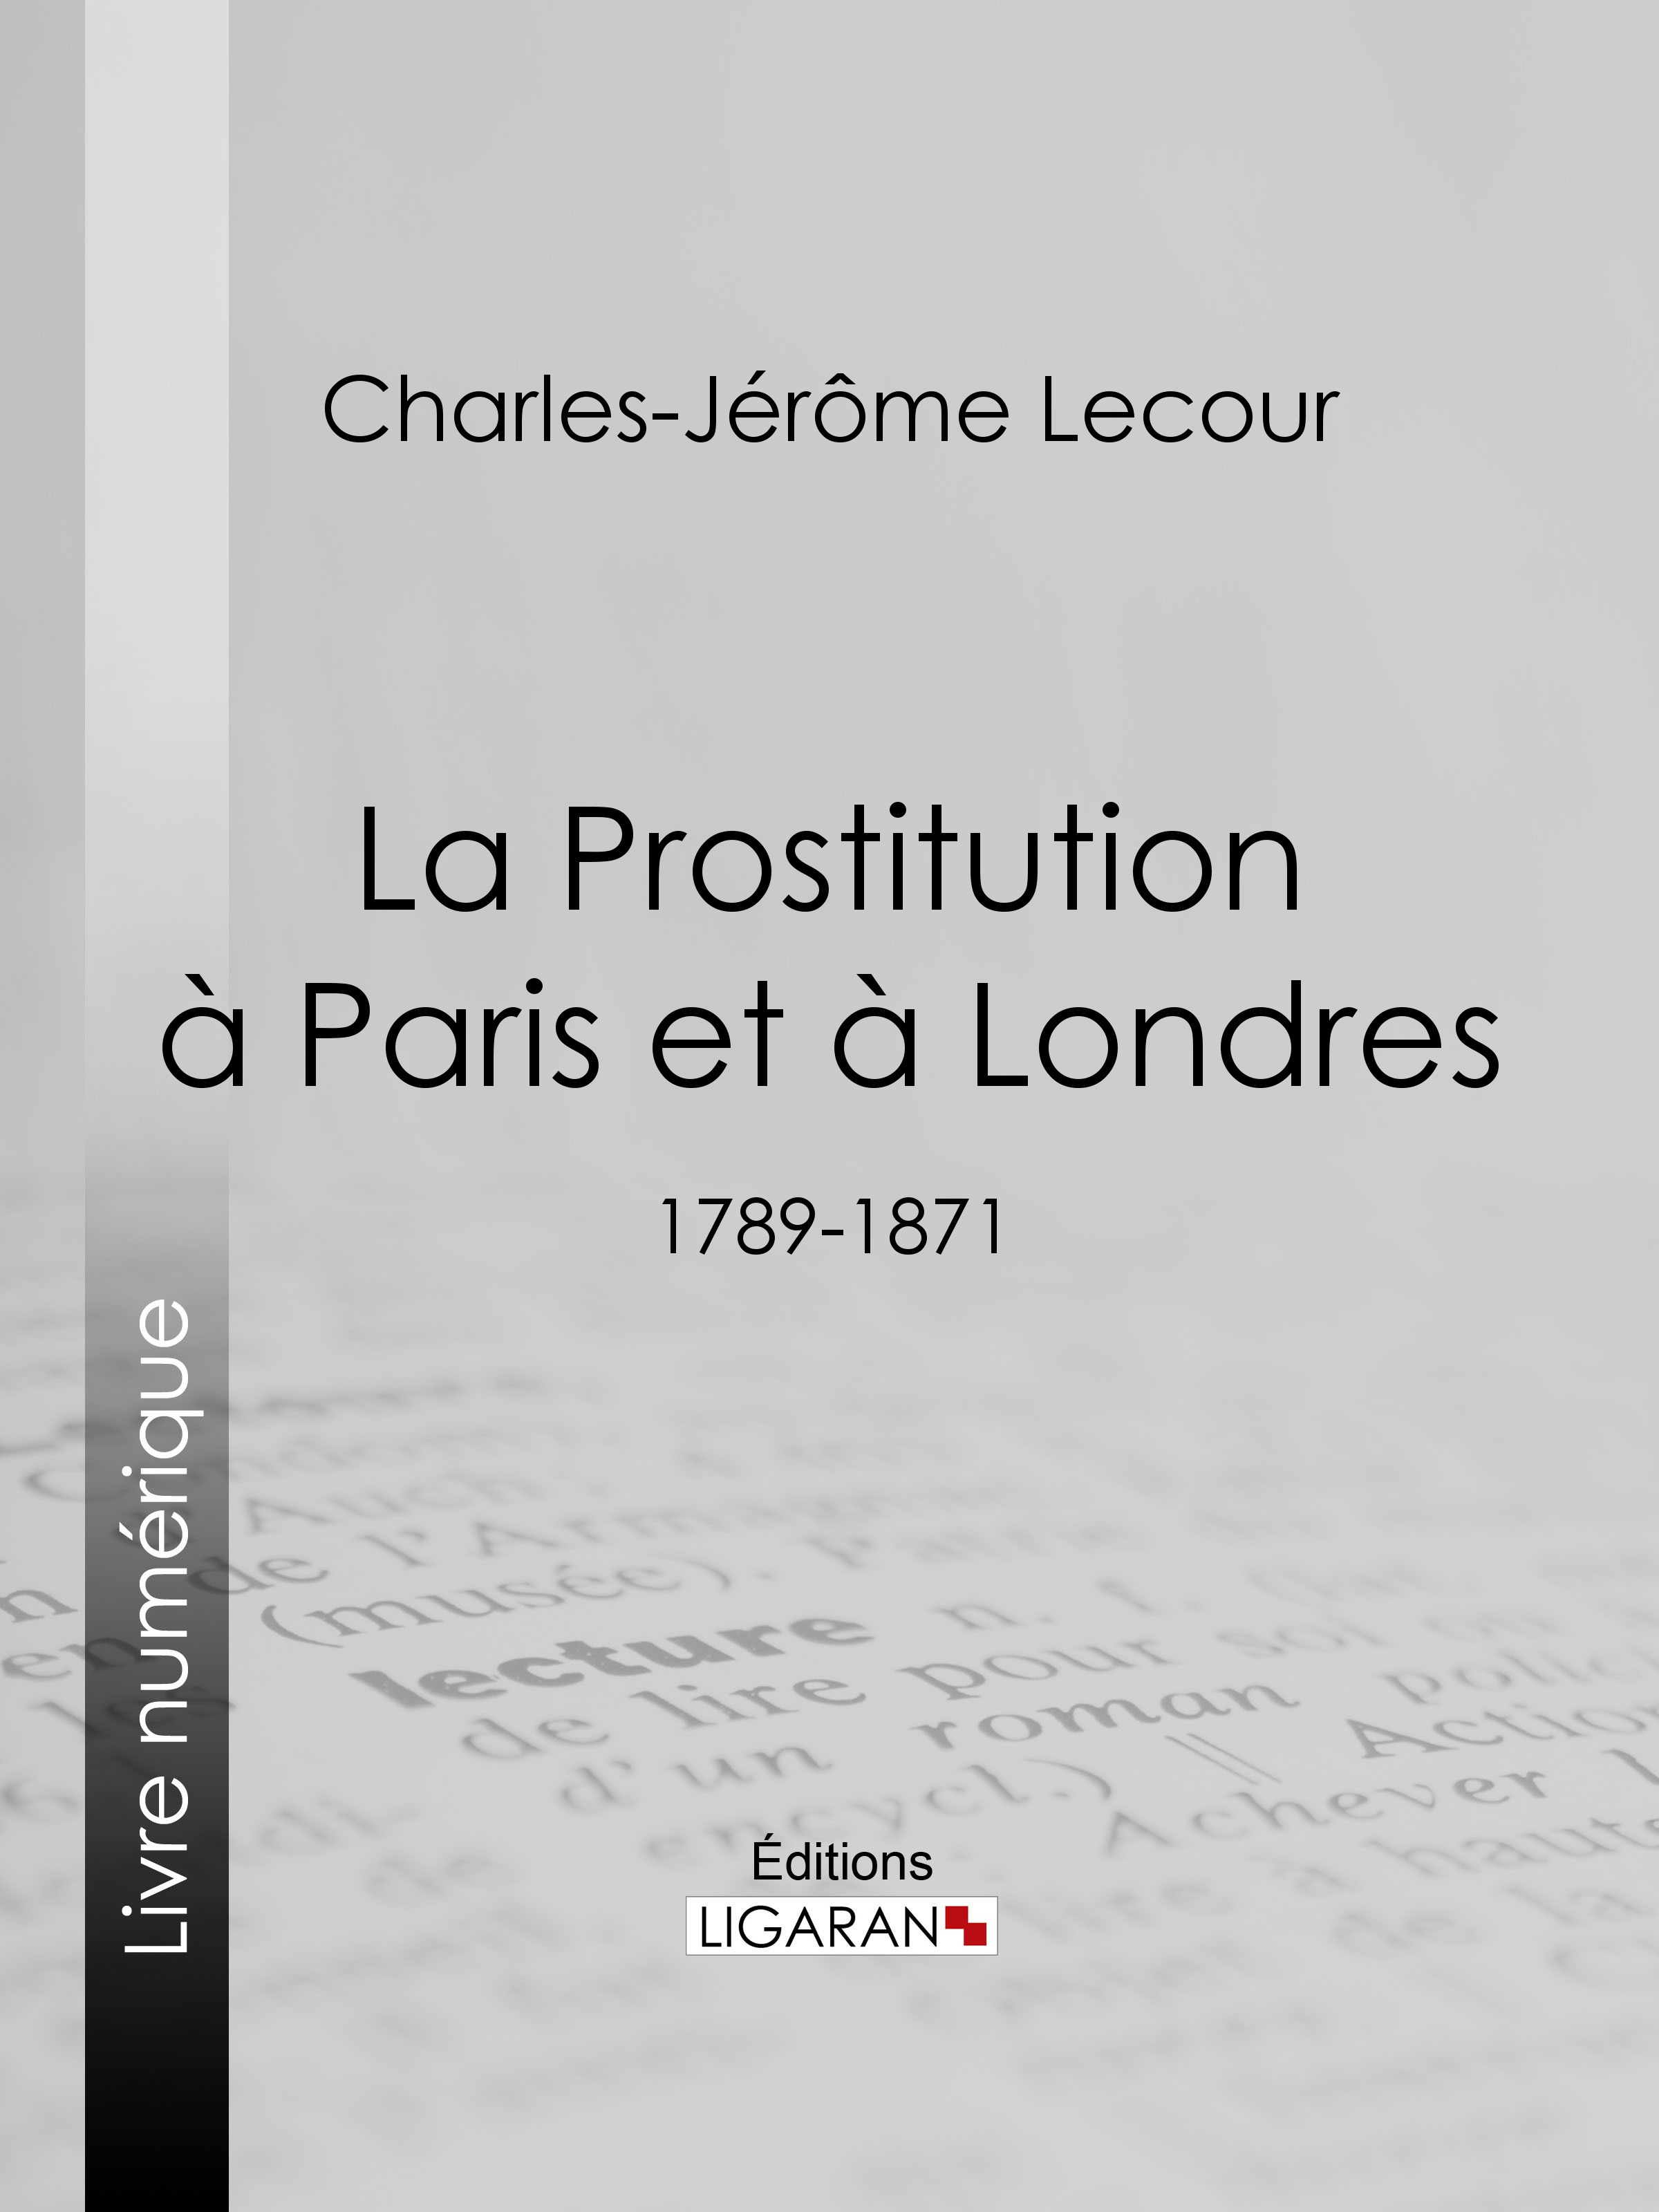 La Prostitution à Paris et à Londres